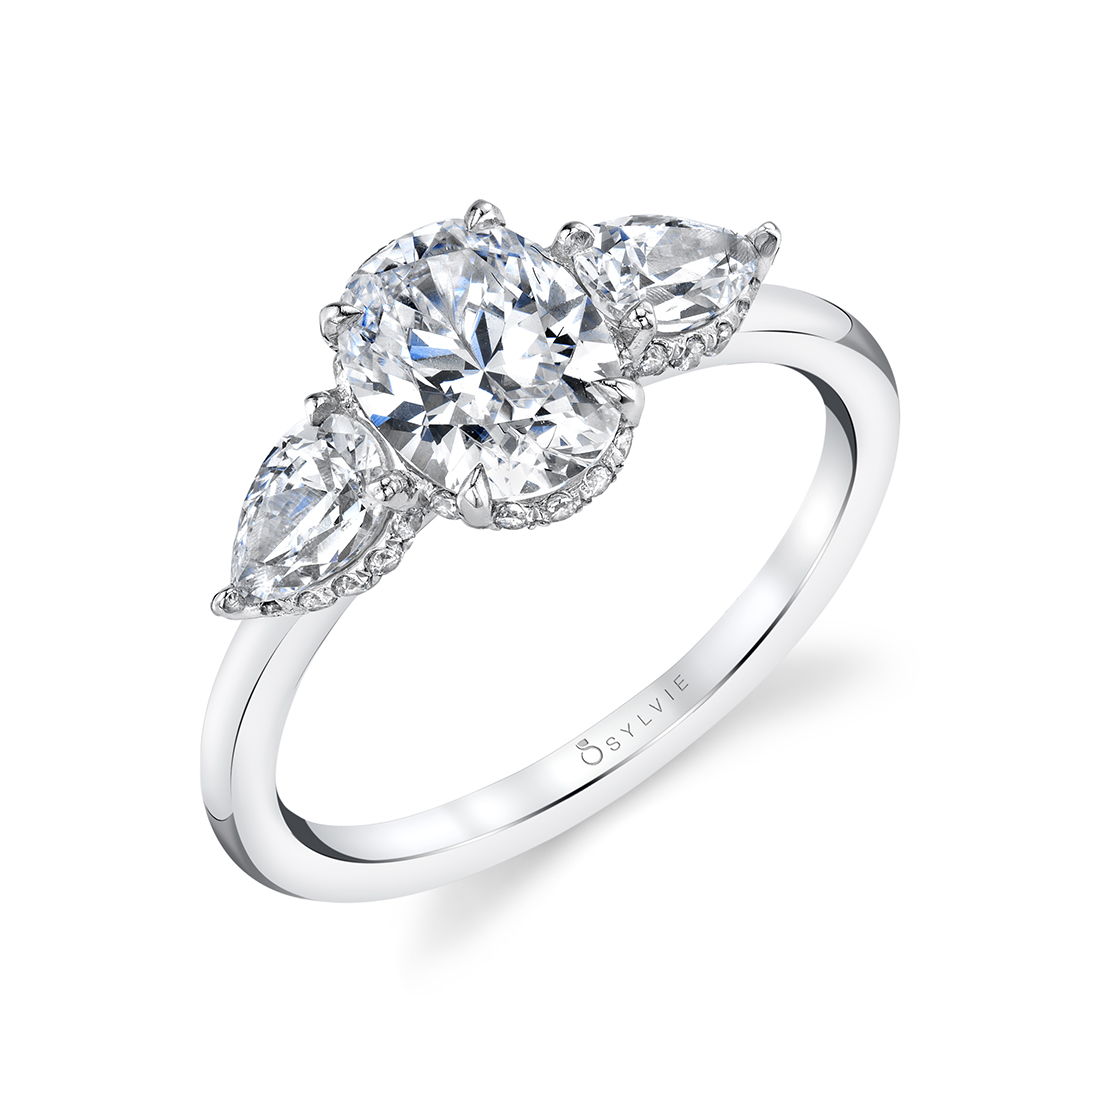 3 stone oval engagement ring S1964S-WG